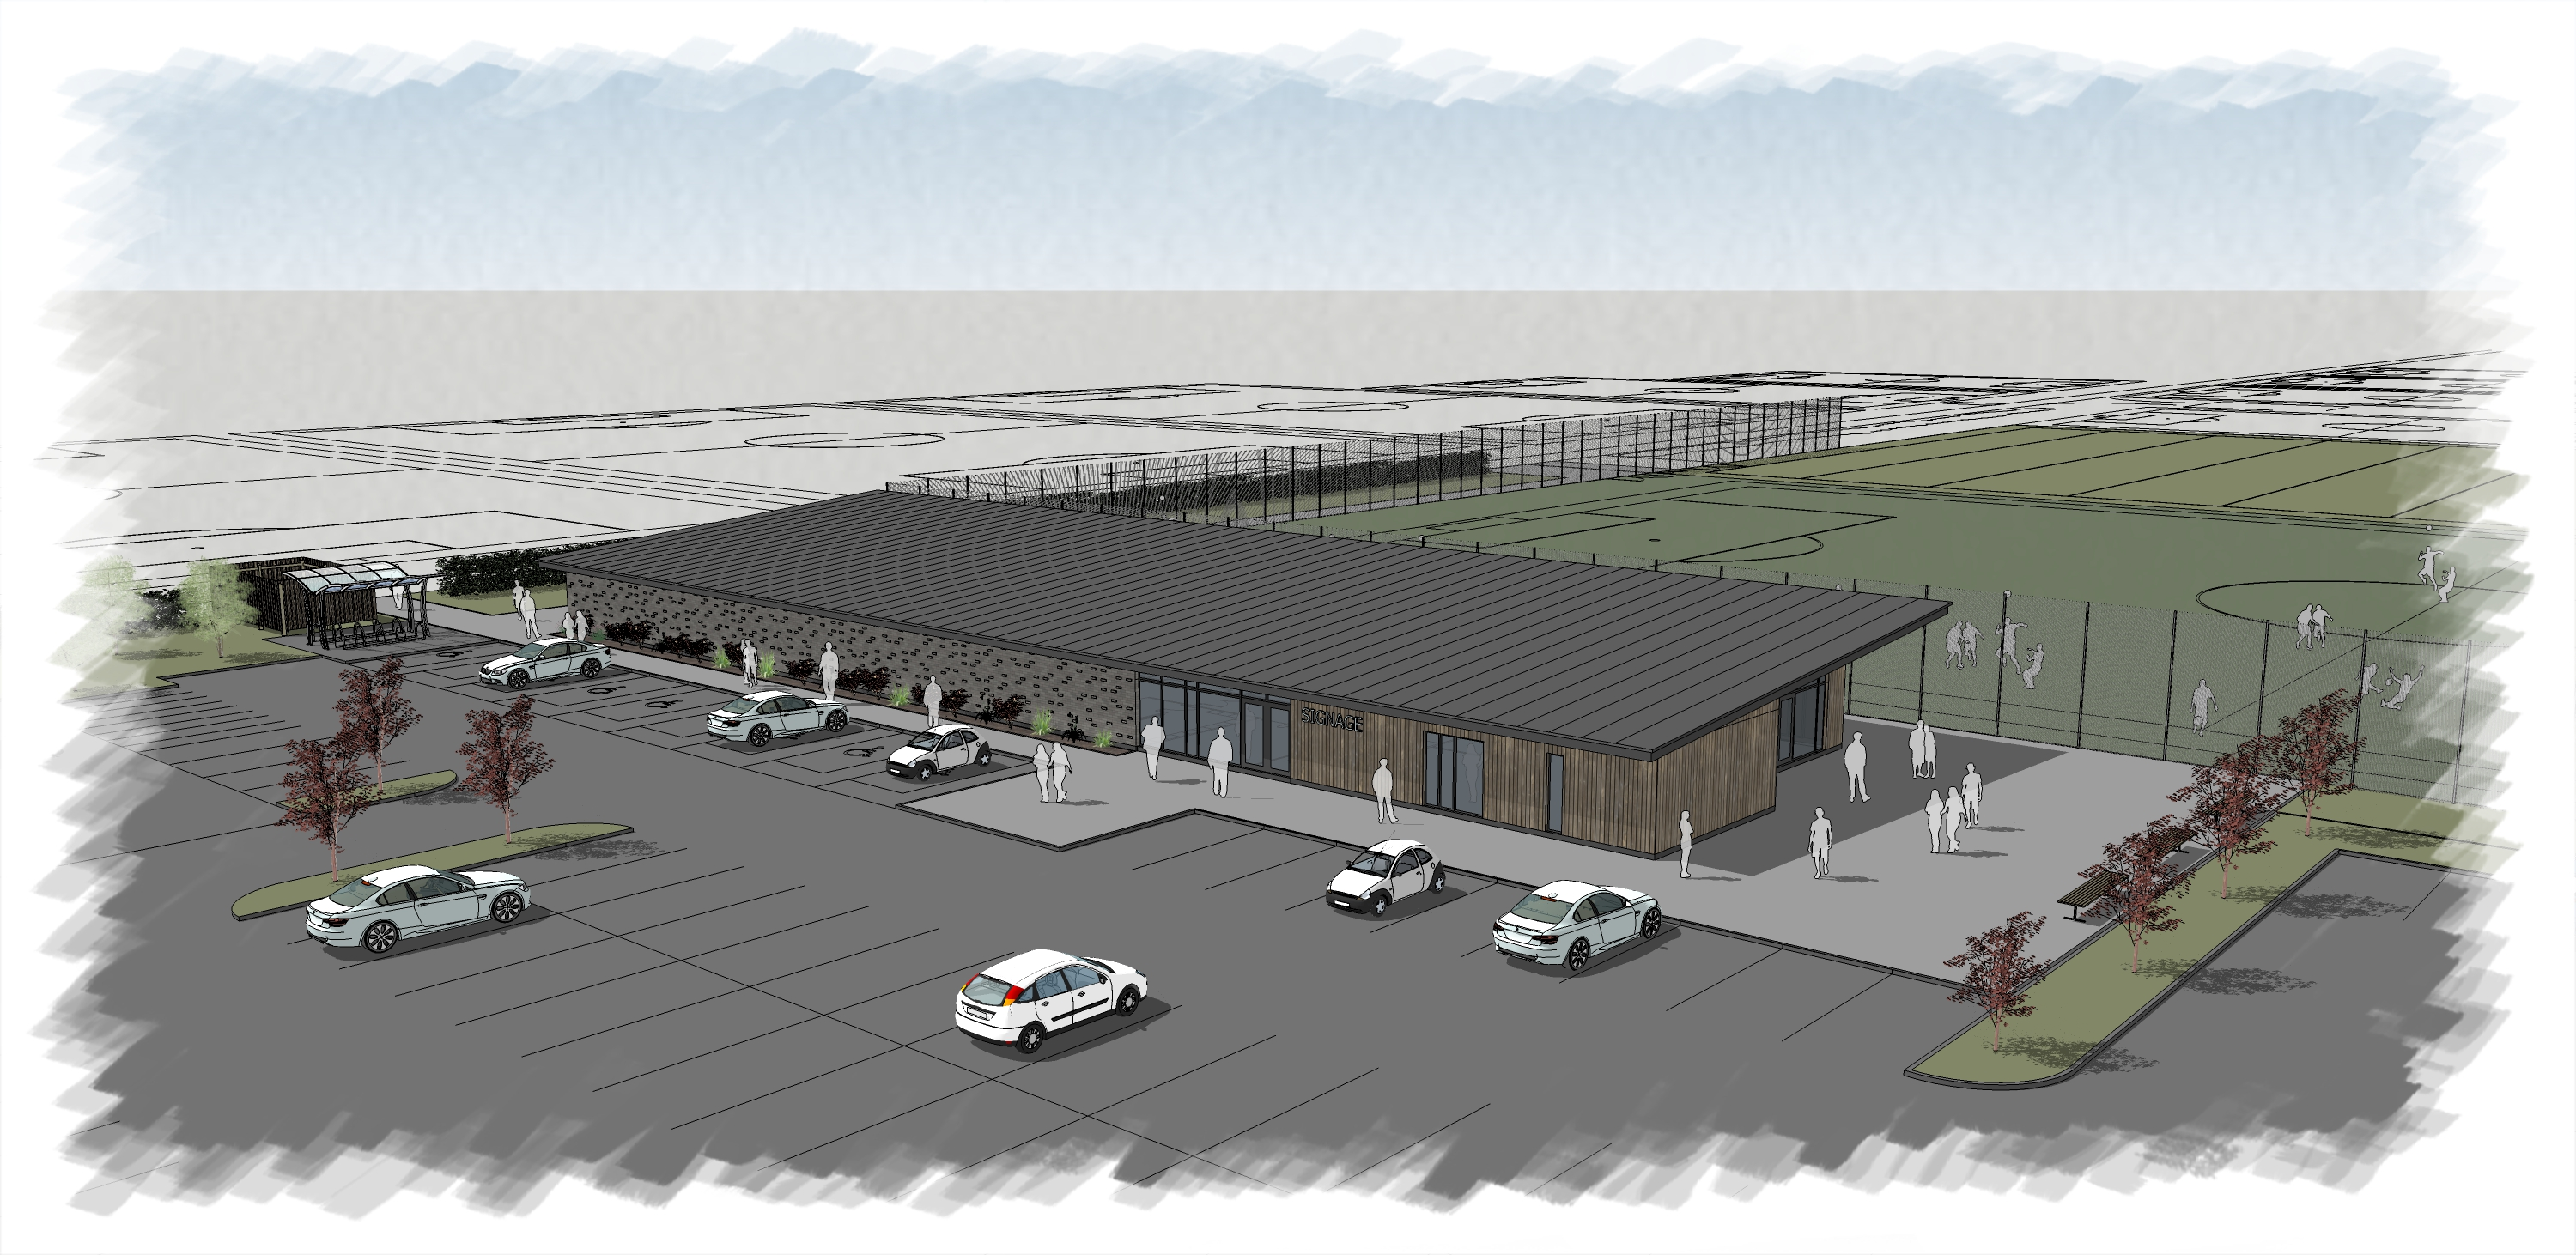 Plans revealed for new Blackpool Airport Enterprise Zone sports facilities